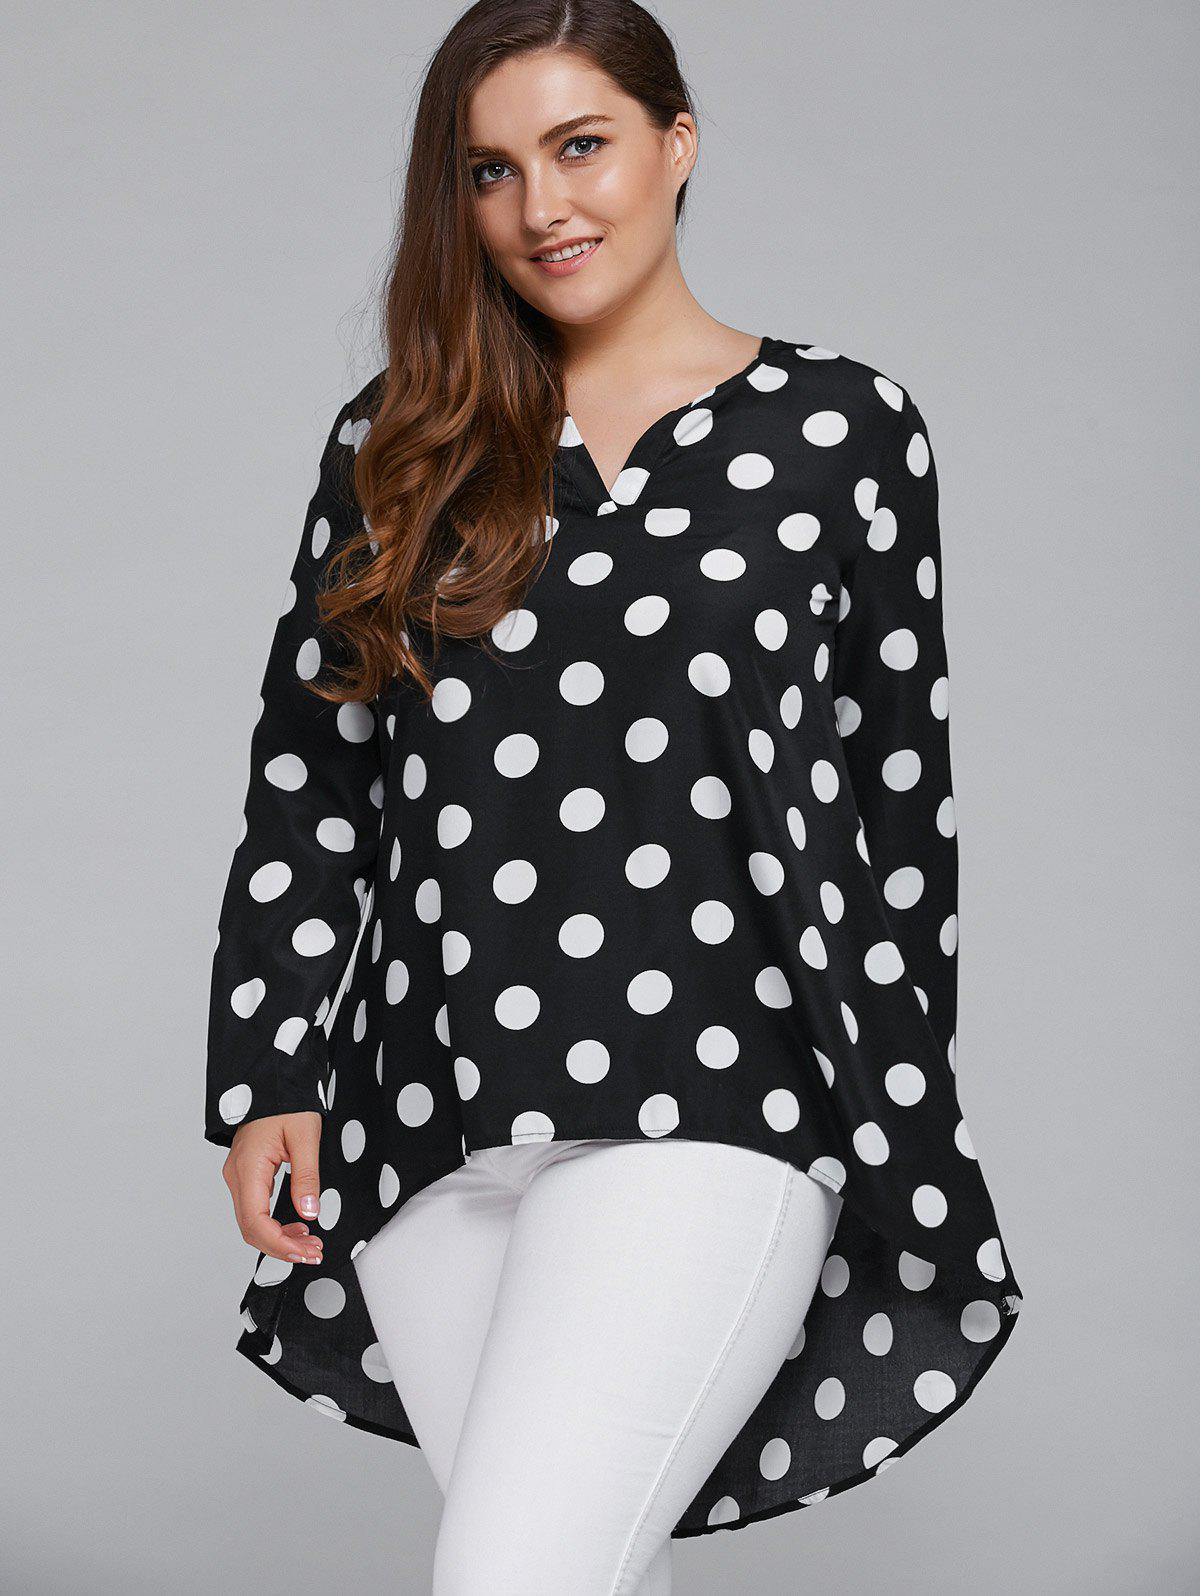 Plus Size Polka Dot High Low BlouseWOMEN<br><br>Size: 2XL; Color: WHITE AND BLACK; Material: Polyester; Shirt Length: Long; Sleeve Length: Full; Collar: Round Neck; Style: Casual; Season: Fall,Spring,Summer; Pattern Type: Polka Dot; Weight: 0.3700kg; Package Contents: 1 x Blouse;